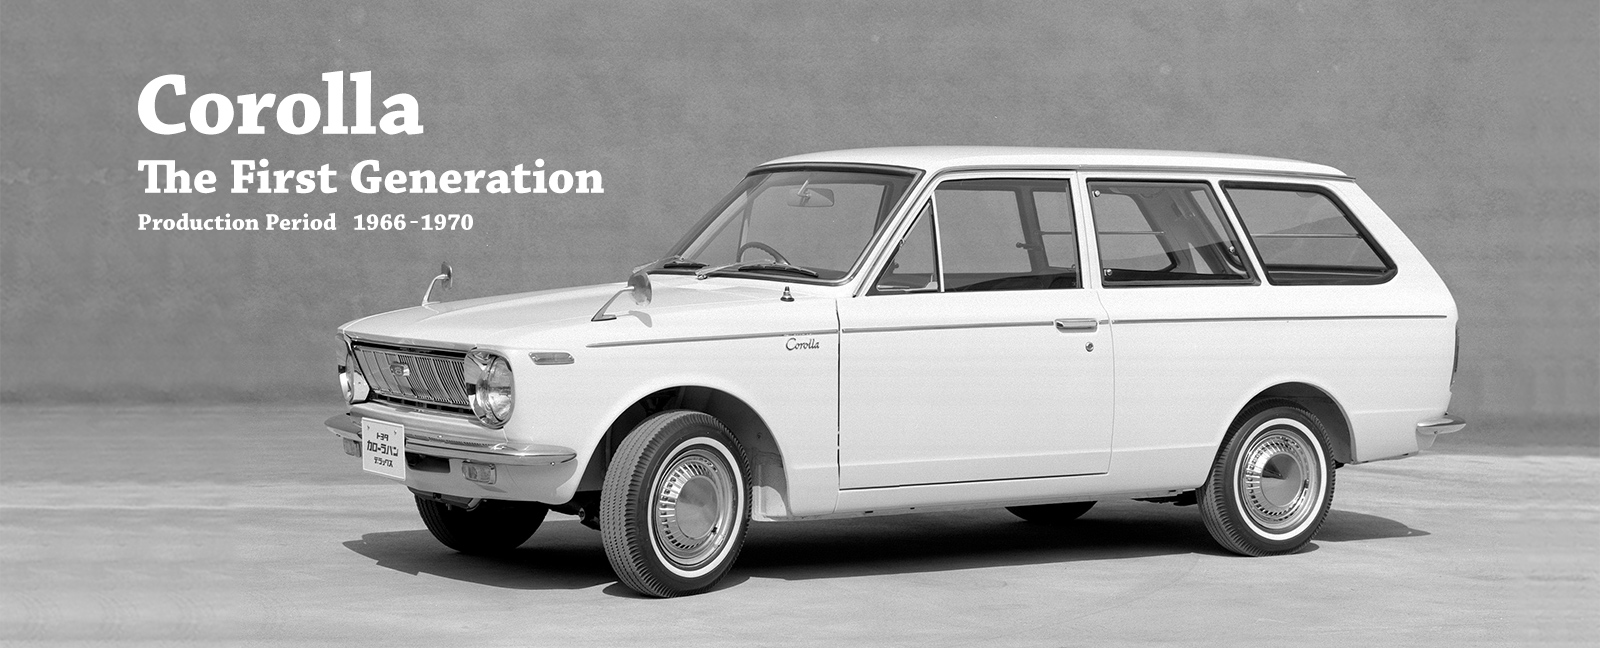 Toyota Corolla turns 50 years old | OpenRoad Auto Group